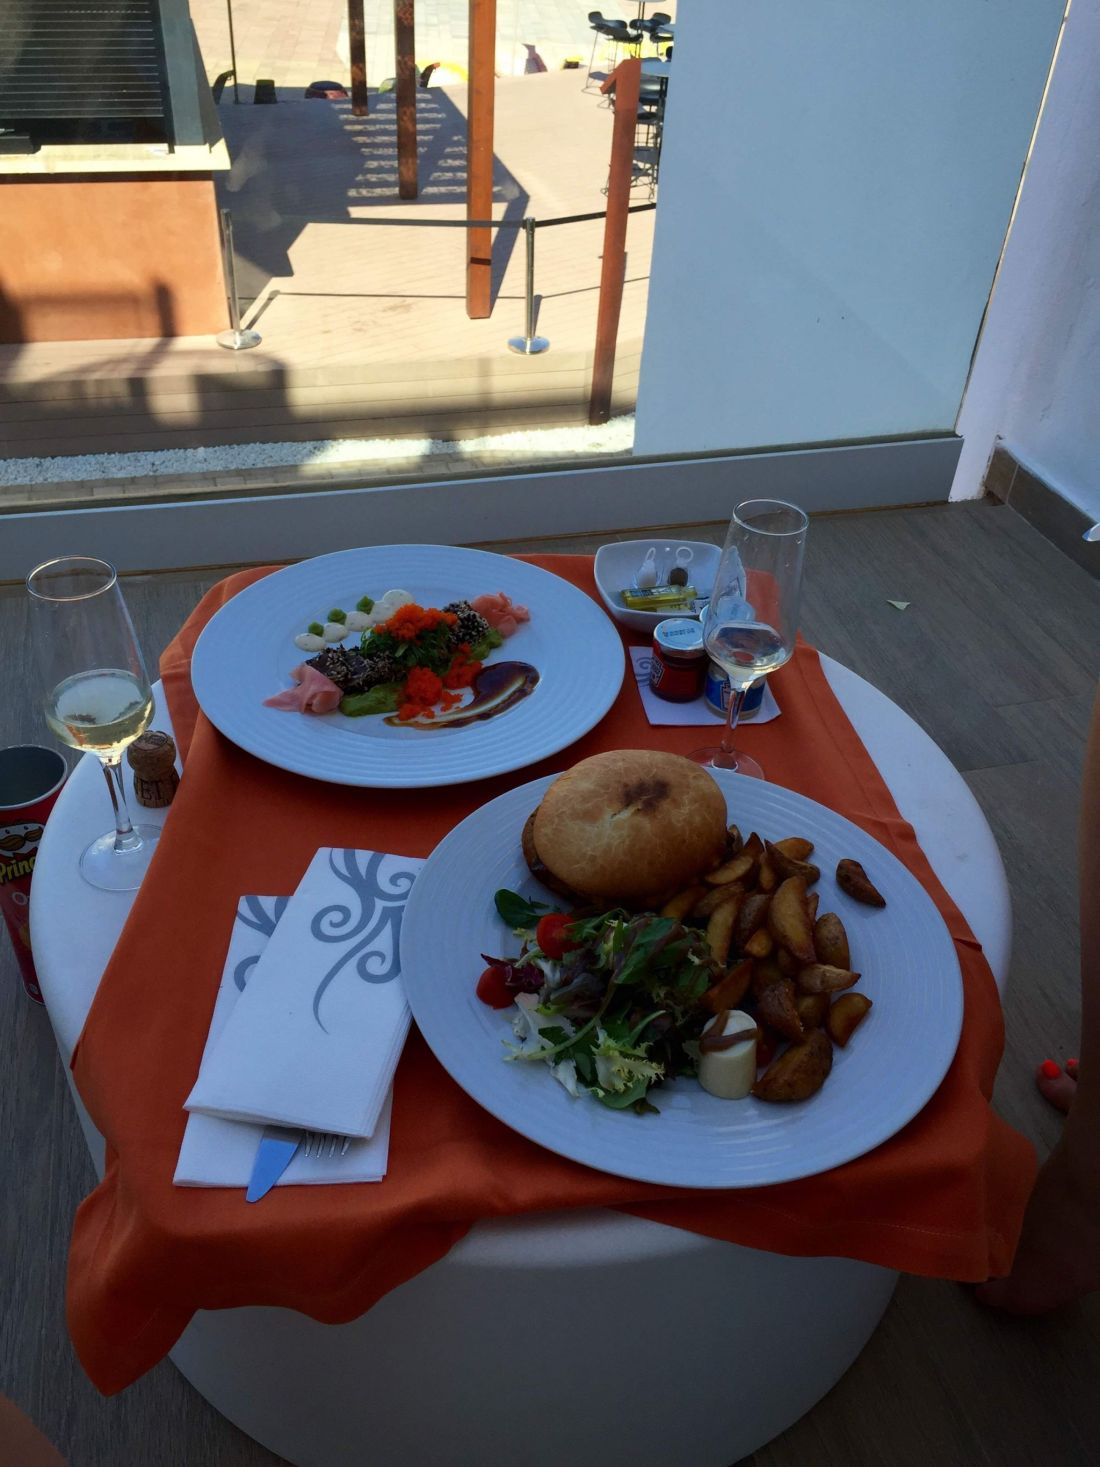 Room service on the balcony